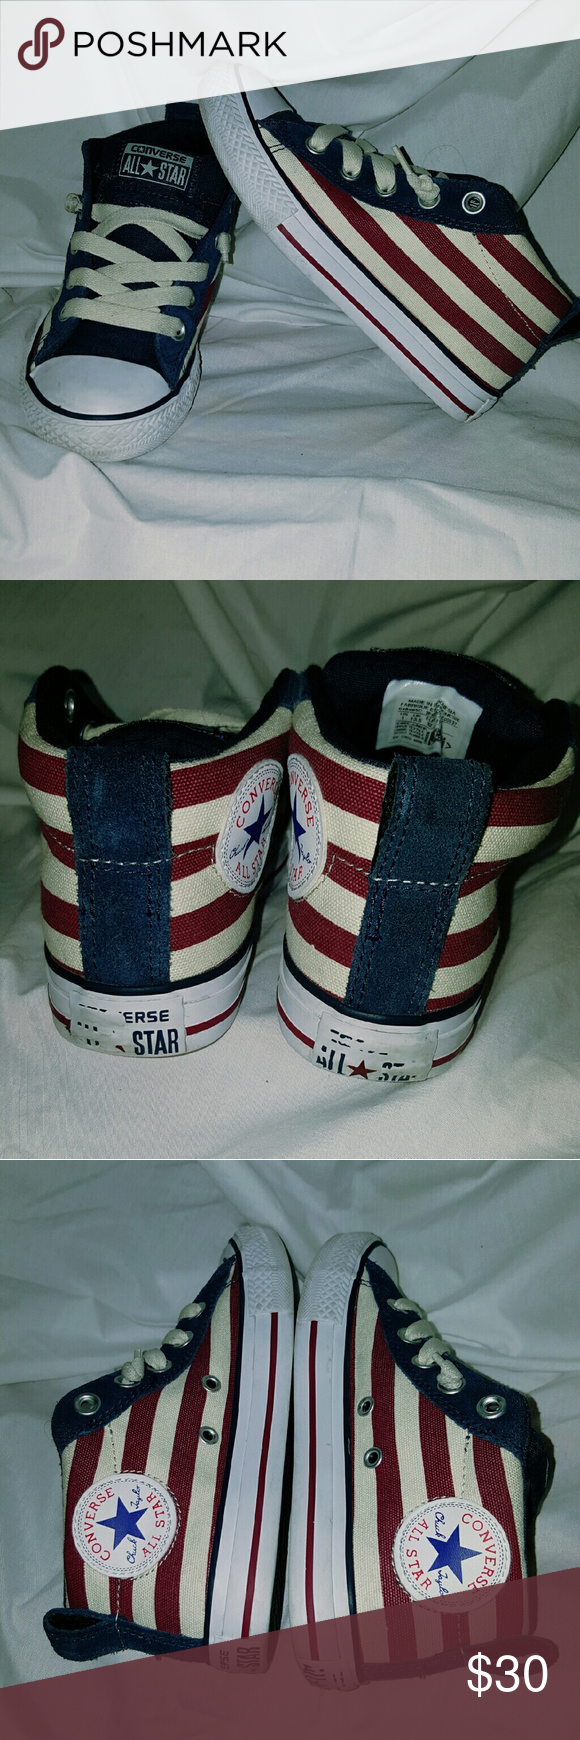 Converse CT STREET MID Converse CT STREET MID Navy/Maroon Size:1  Excellent condition; needs to be wiped down Converse Shoes Sneakers